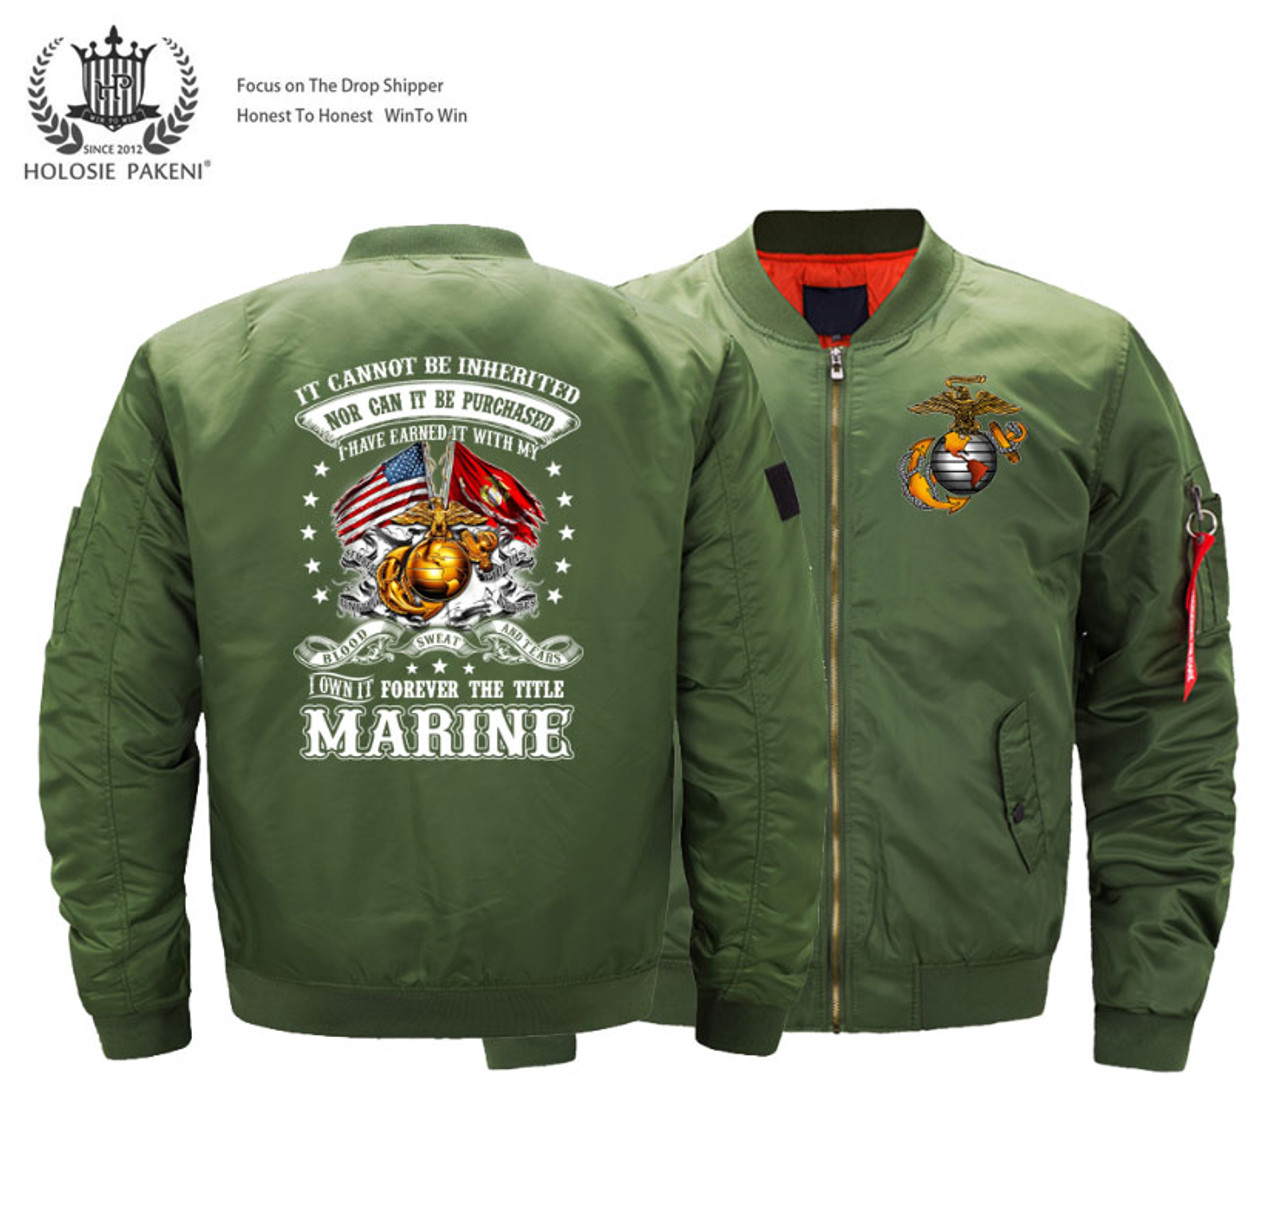 **(OFFICIALLY-LICENSED-U.S. MARINES,MENS-HEAVY-WEIGHT-THICK-FLIGHT/BOMBER-JACKETS,WITH DUAL-FLAGS,CLASSIC-OFFICIAL-MARINE-ANCHOR/GLOBE-LOGOS & SEMPER-FIDELIS,NICE-3D-GRAPHIC-PRINTED-DOUBLE-SIDED-PRINTED/IN-CLASSIC-OLIVE-GREEN-BOMBER-FLIGHT-JACKETS)**